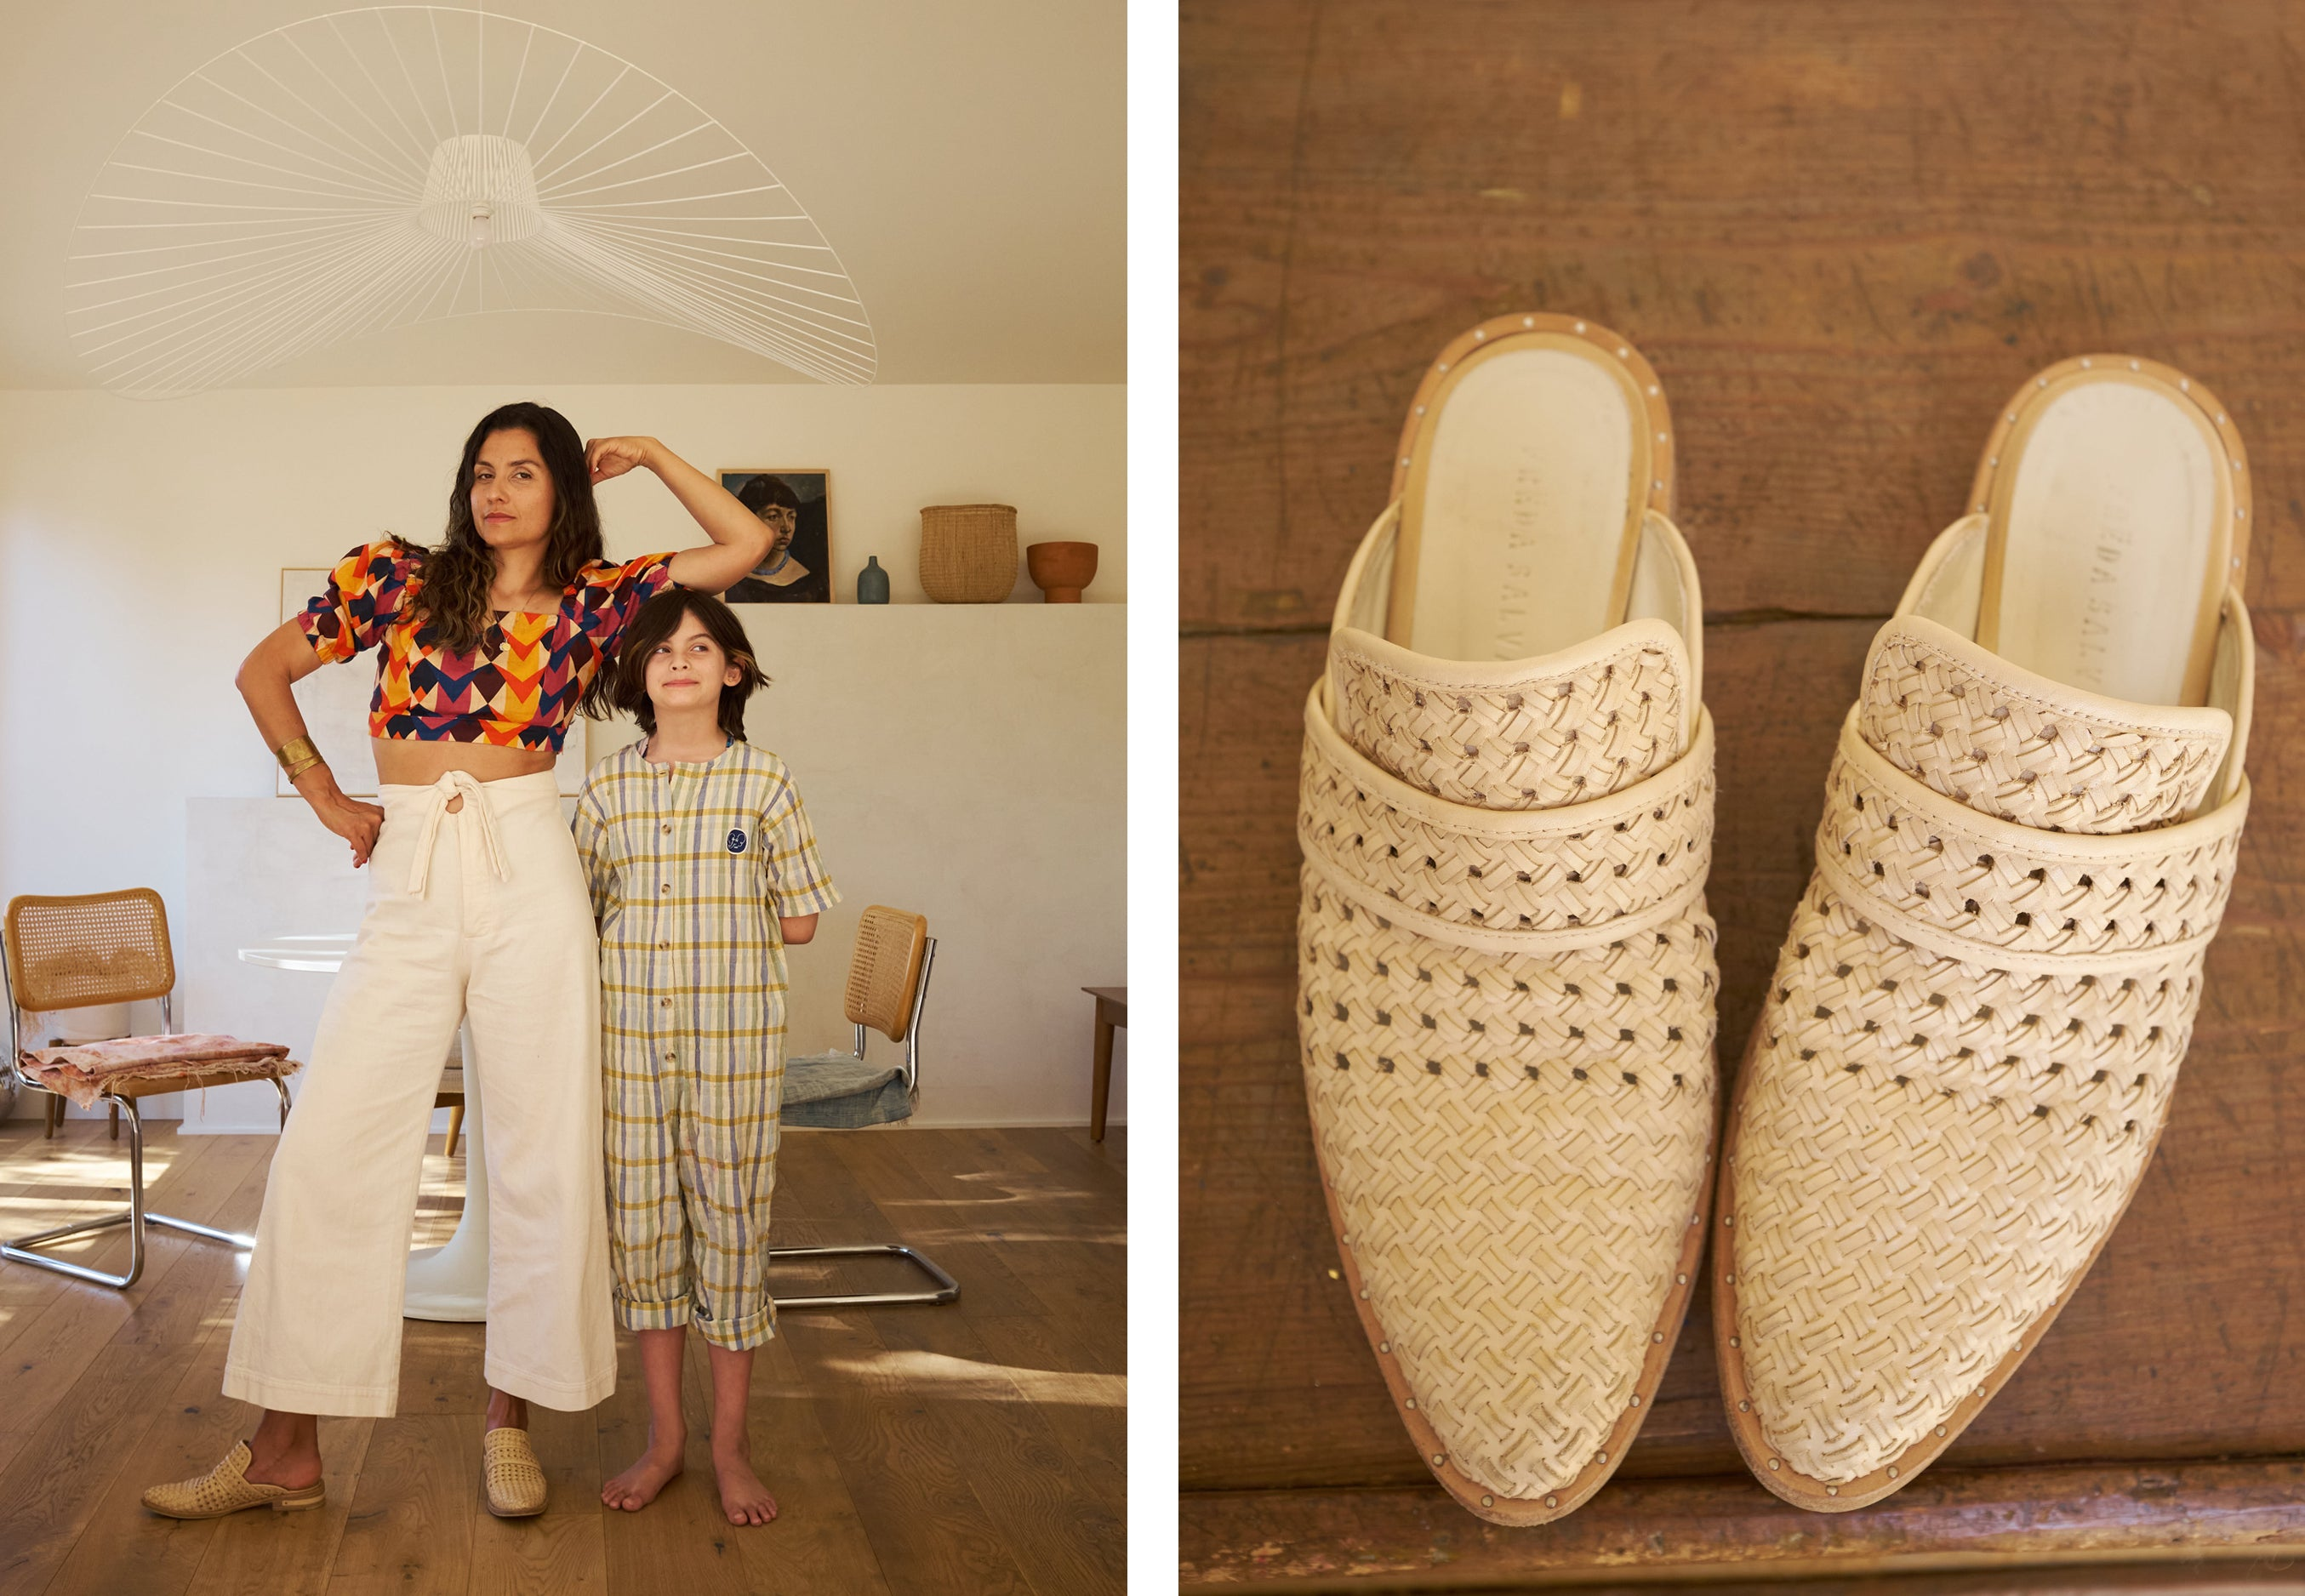 The KEENN woven natural as seen on photographer and Mom, Priscilla Gragg in her home.